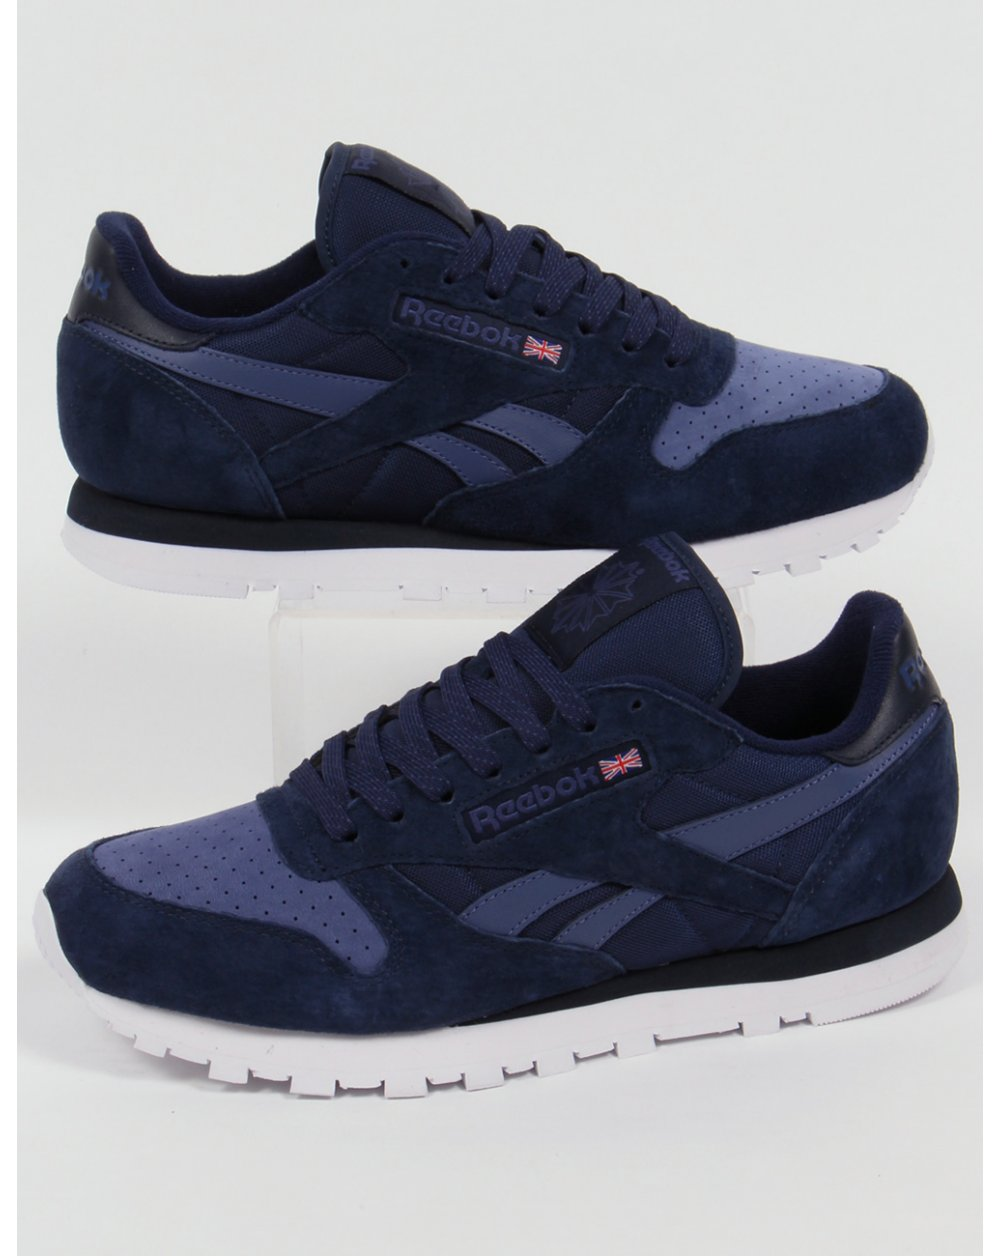 Reebok Promo Codes & Coupons. Looking for the latest deals from Reebok? Then follow this link to their homepage to view their current codes and sales, and while you're there, sign up for emails to be among the first to know about any future deals!